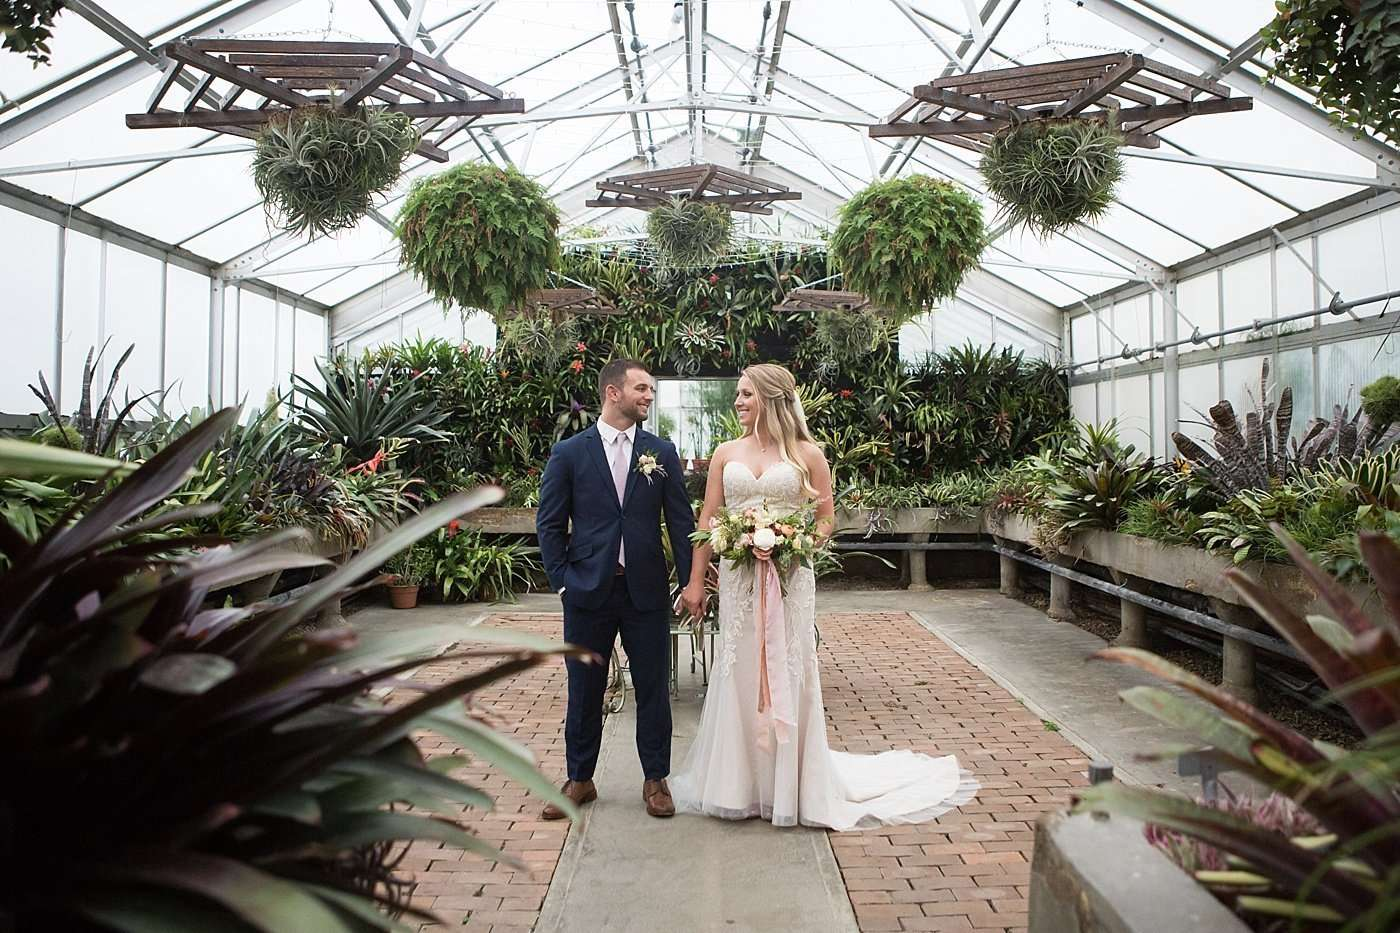 Jake & Abbie | A Swoon-Worthy Wedding at Breathtaking Garden Estate 216